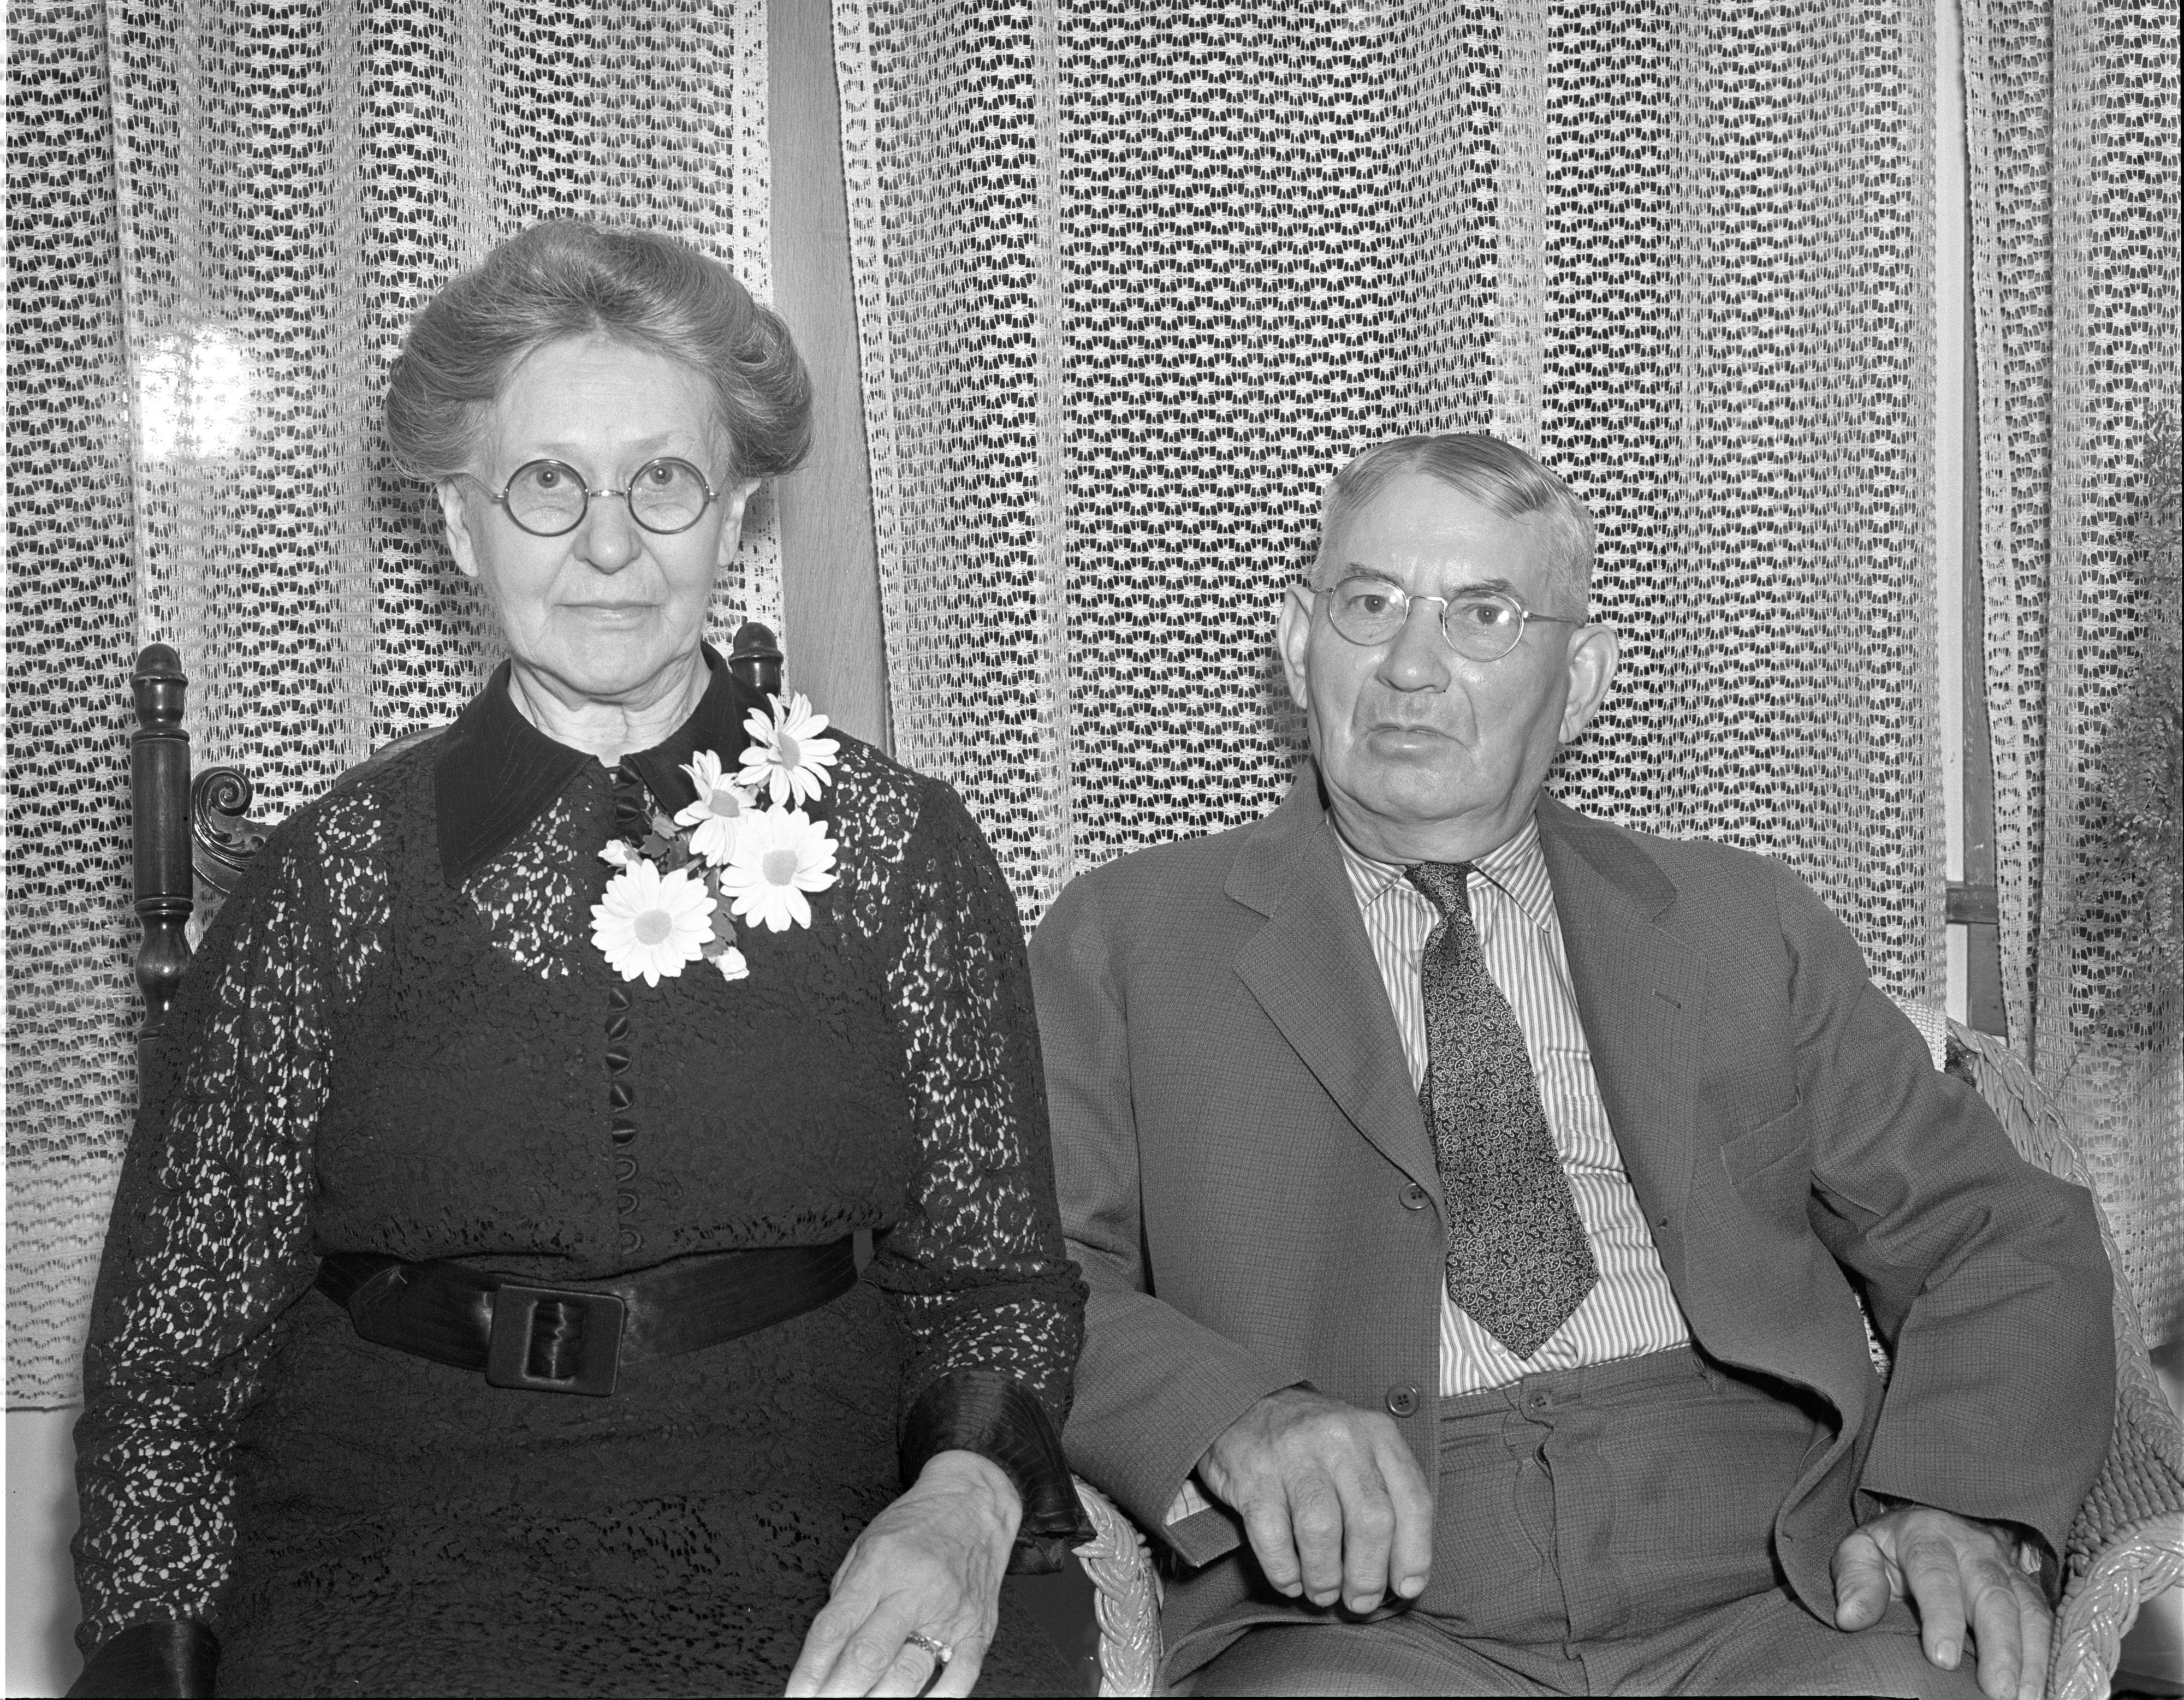 Mr. and Mrs. Charles F. Pardon, June 1938 image